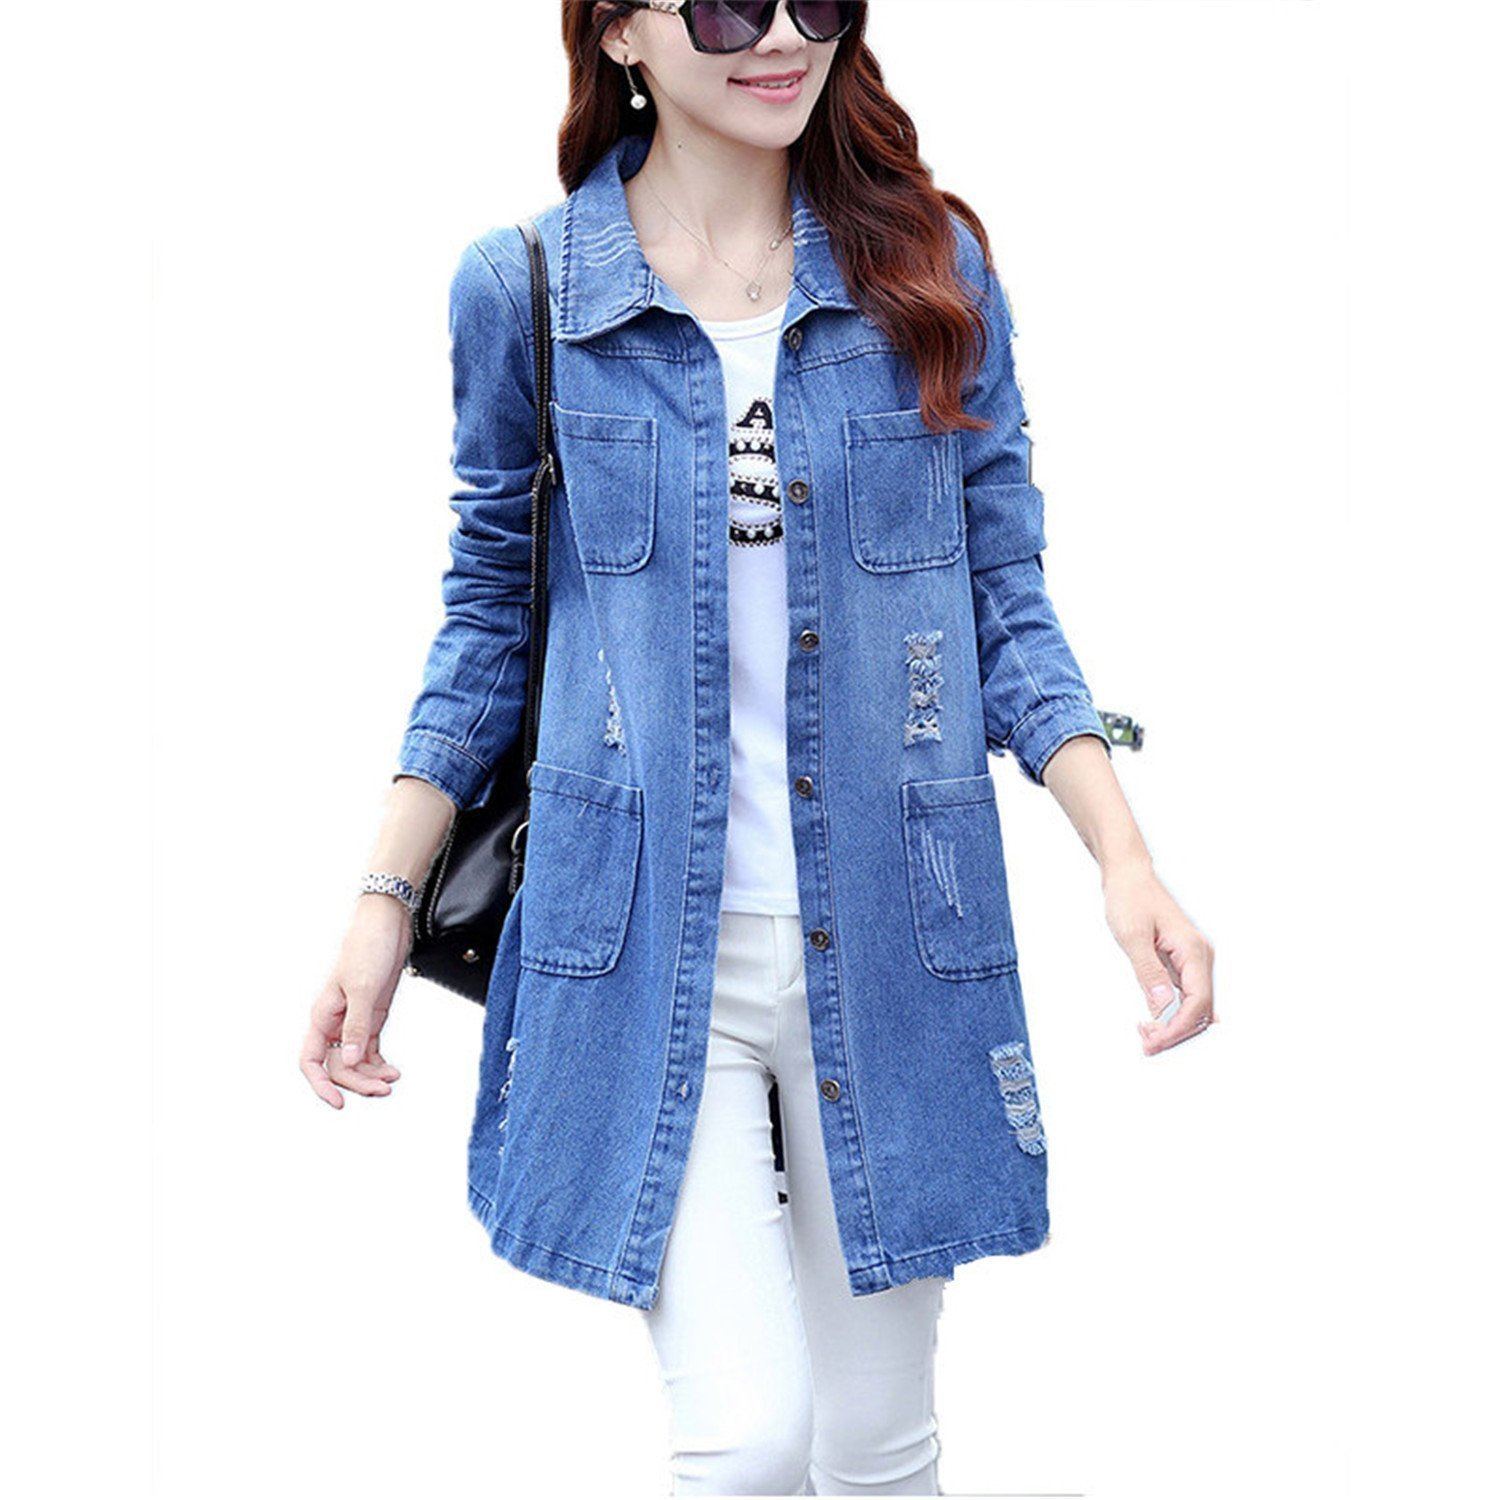 adbbce757b Get Quotations · Rising On Plus Size 5XL Denim Jacket Women Fashion Long  Sleeve Jeans Coat Female Casual Ripped